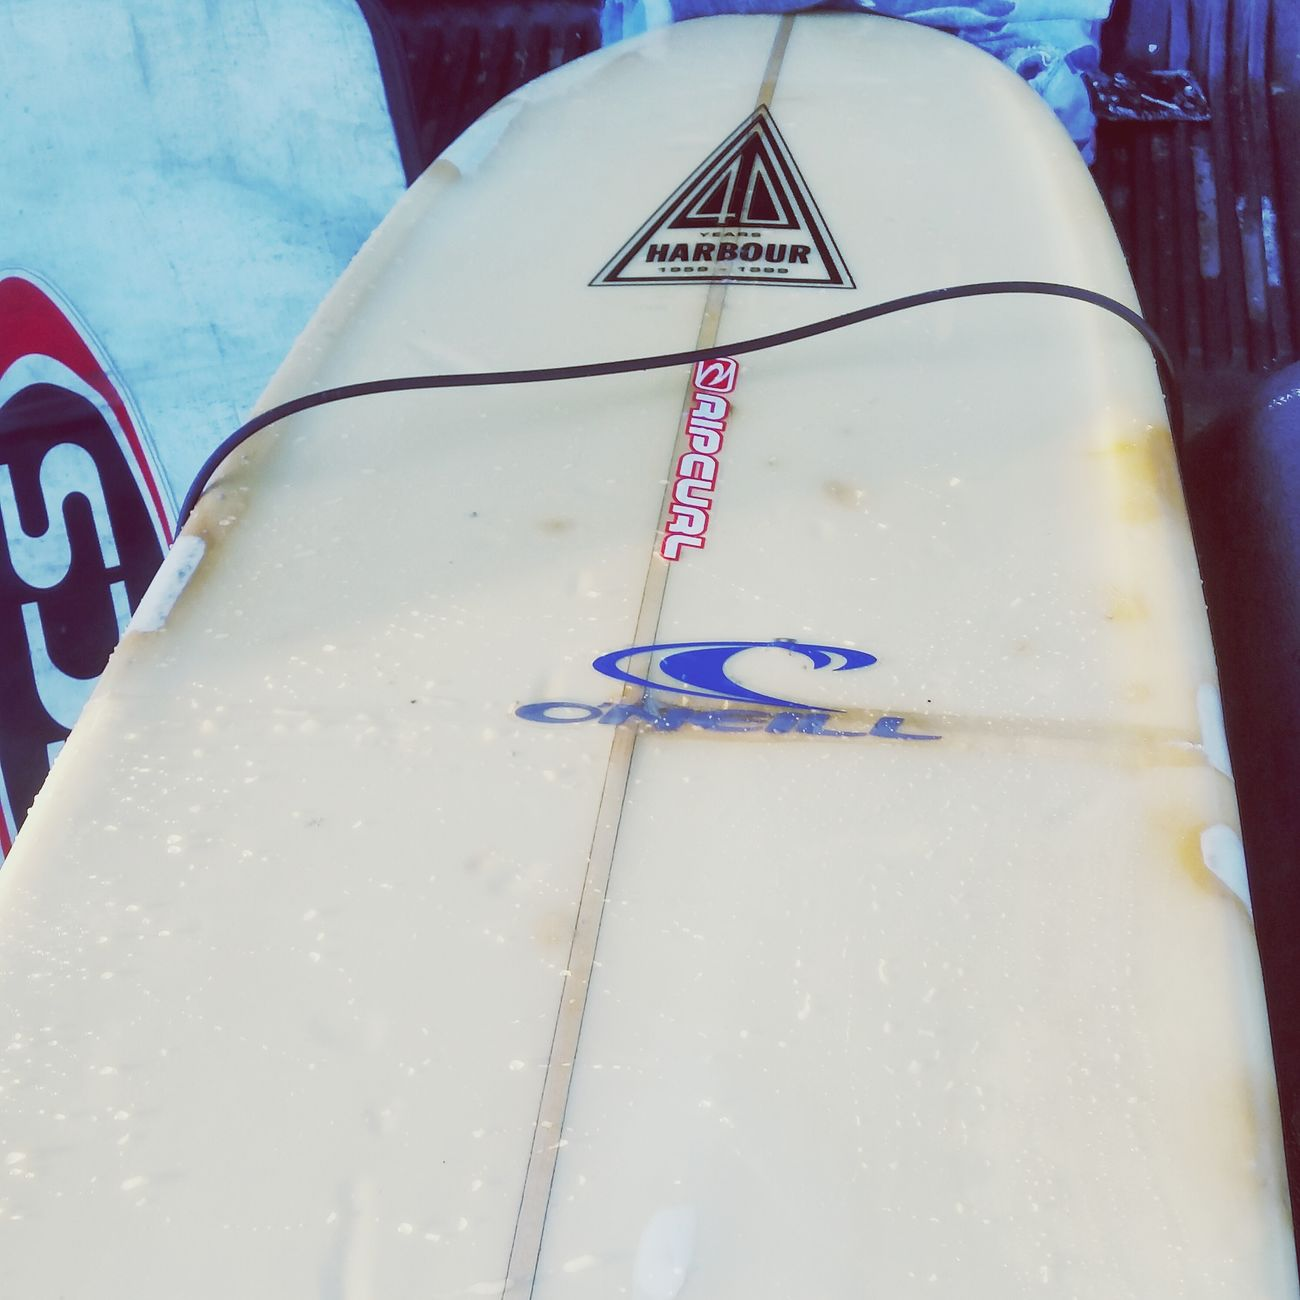 Heart Break  Surf Board Damage Surfing Life Is A Beach 9/11/14